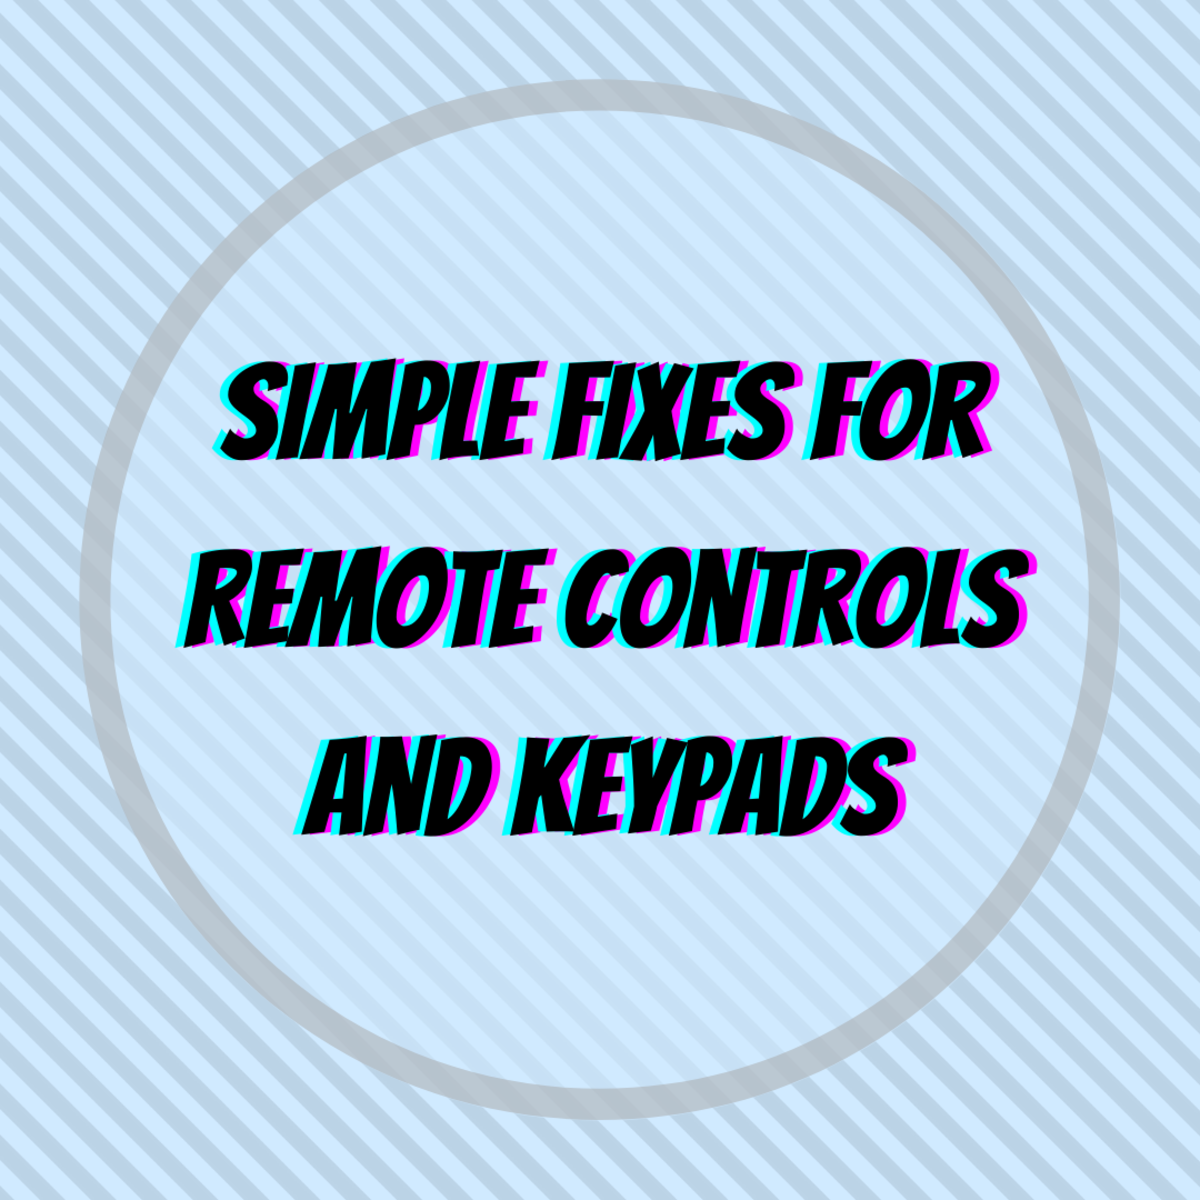 Learn how to fix your remote control and/or keyboard pad with aluminum foil, conductive silver ink, and replacement rubber pads